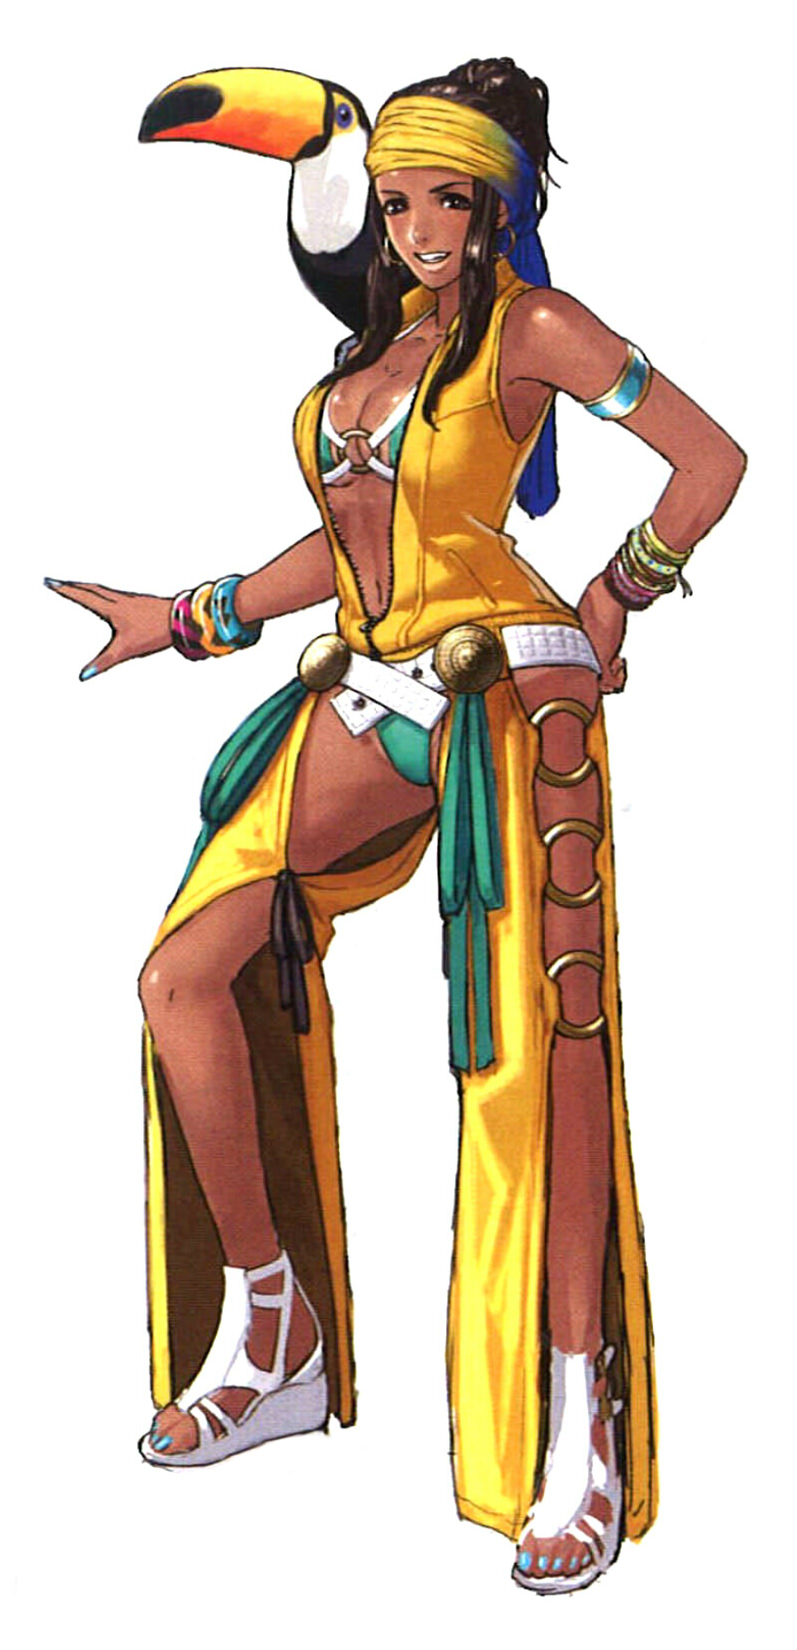 Zarina super smash bros tourney wiki fandom powered by wikia - King of fighters characters pictures ...